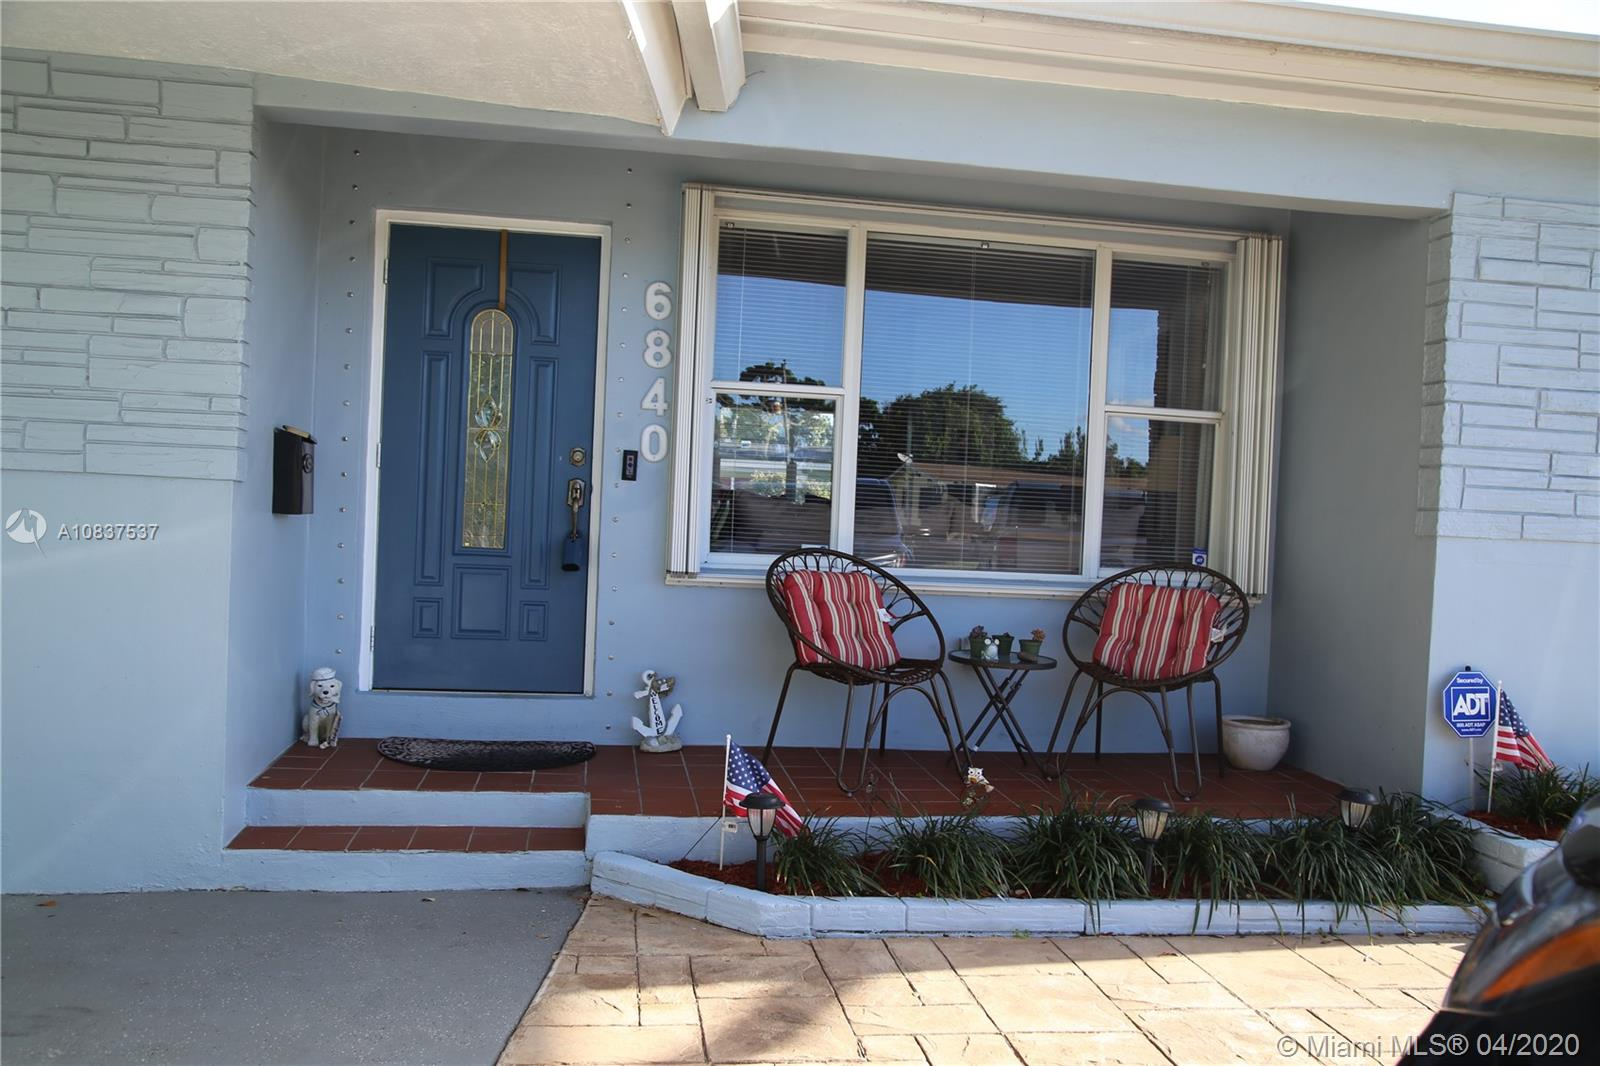 Picture yourself quarantined in this move-in ready, 3 bedroom, 2 bath home. :)  The Sellers have worked hard getting their home in pristine condition.  High glossed real hard wood flooring (not laminate), Plenty of kitchen cabinets and counter space.  Updated bathrooms. Nice size back yard with patio, with room for a pool. Nicely landscaped, 1 carport with plenty more parking on paved driveway.  No HOA here!  This property is located in Pines Village with the Elementary school down the street.  Centrally located in between Miami & Ft. Lauderdale close to the Florida's Turnpike.  Close to shopping, schools, and the Beach.